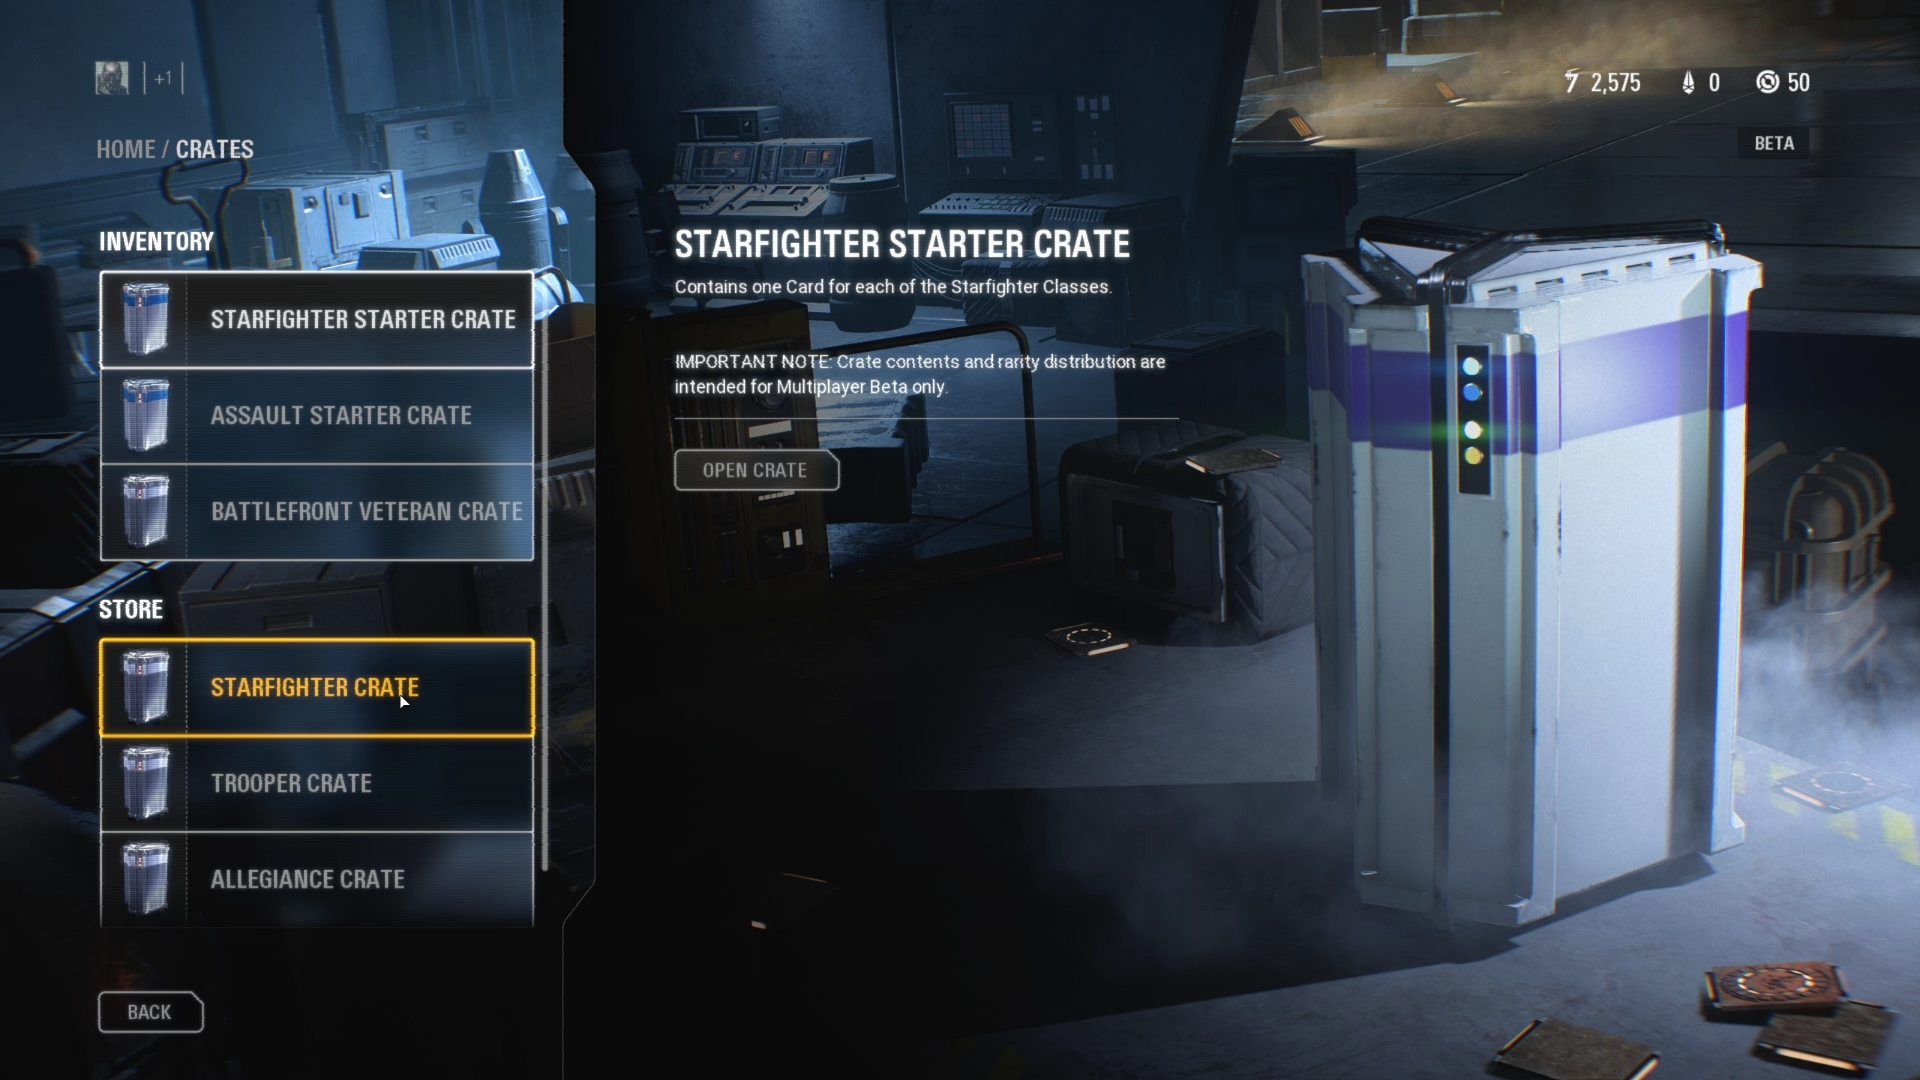 Star Wars Battlefront 2: Most Powerful Items Will Be Earned In-Game